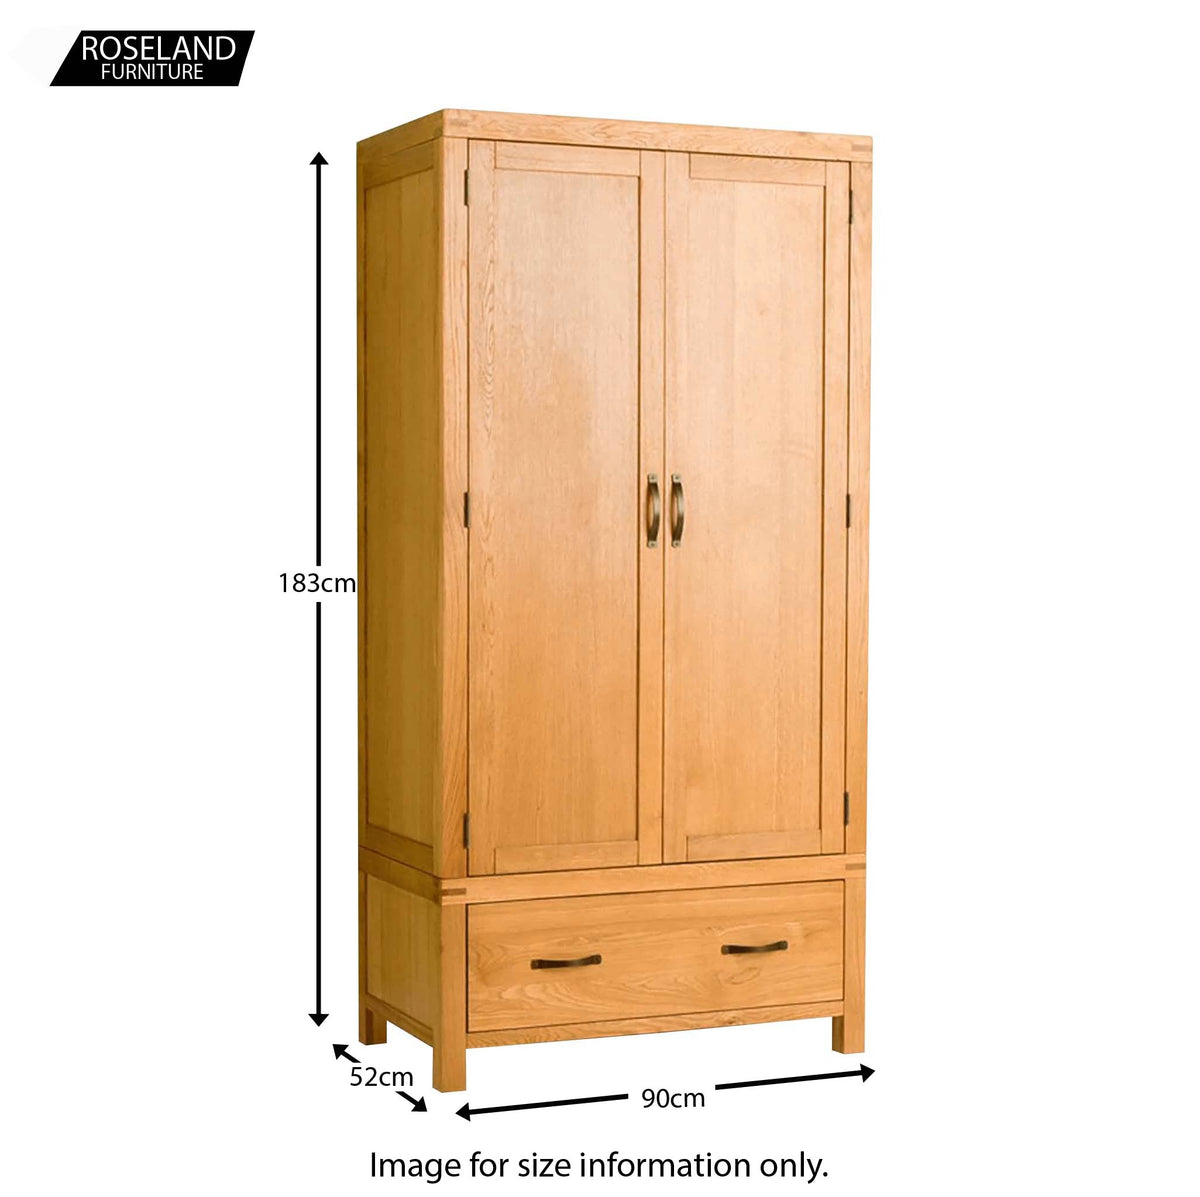 Abbey Waxed Oak Bedroom Furniture Set - Wardrobe size guide